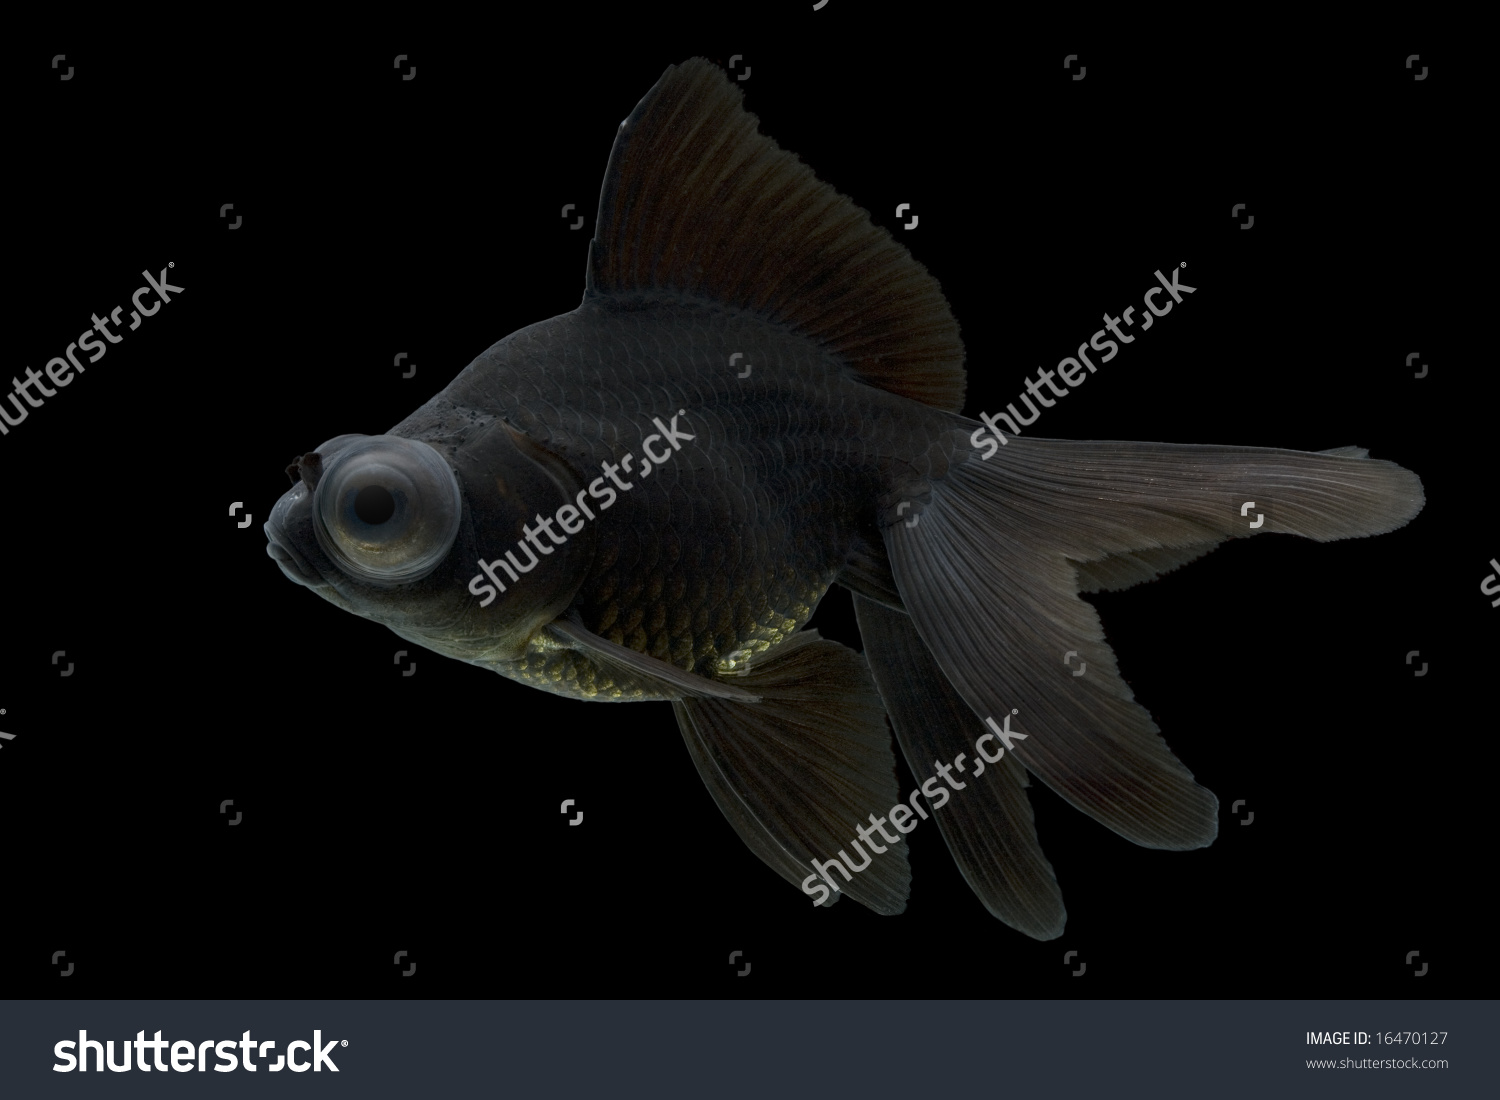 Sideview Black Moor Goldfish Swimming Against Stock Photo 16470127.